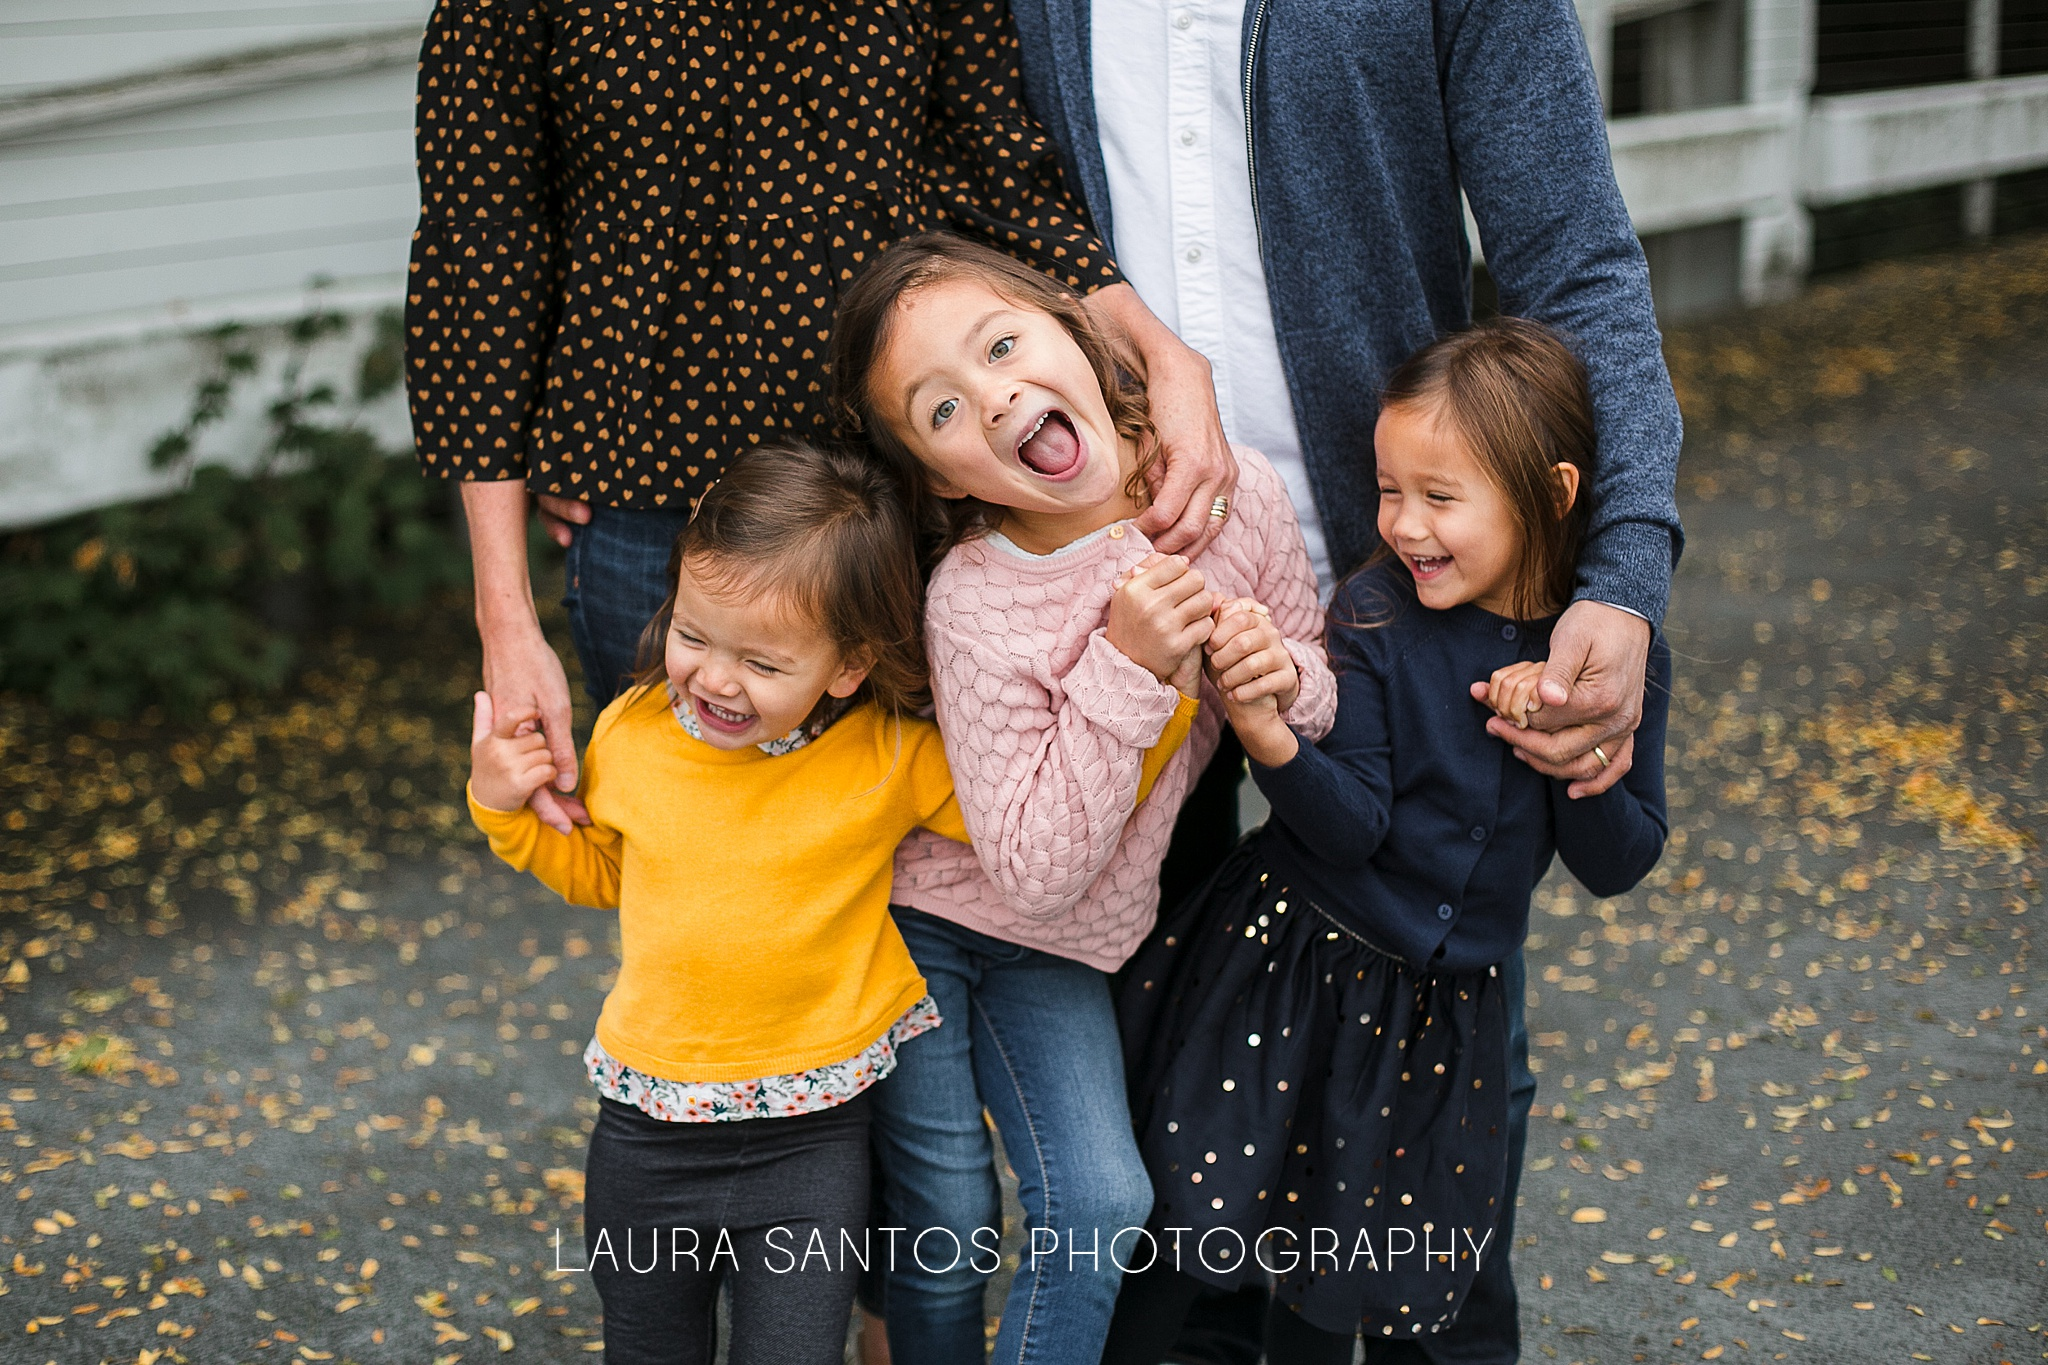 Laura Santos Photography Portland Oregon Family Photographer_0883.jpg